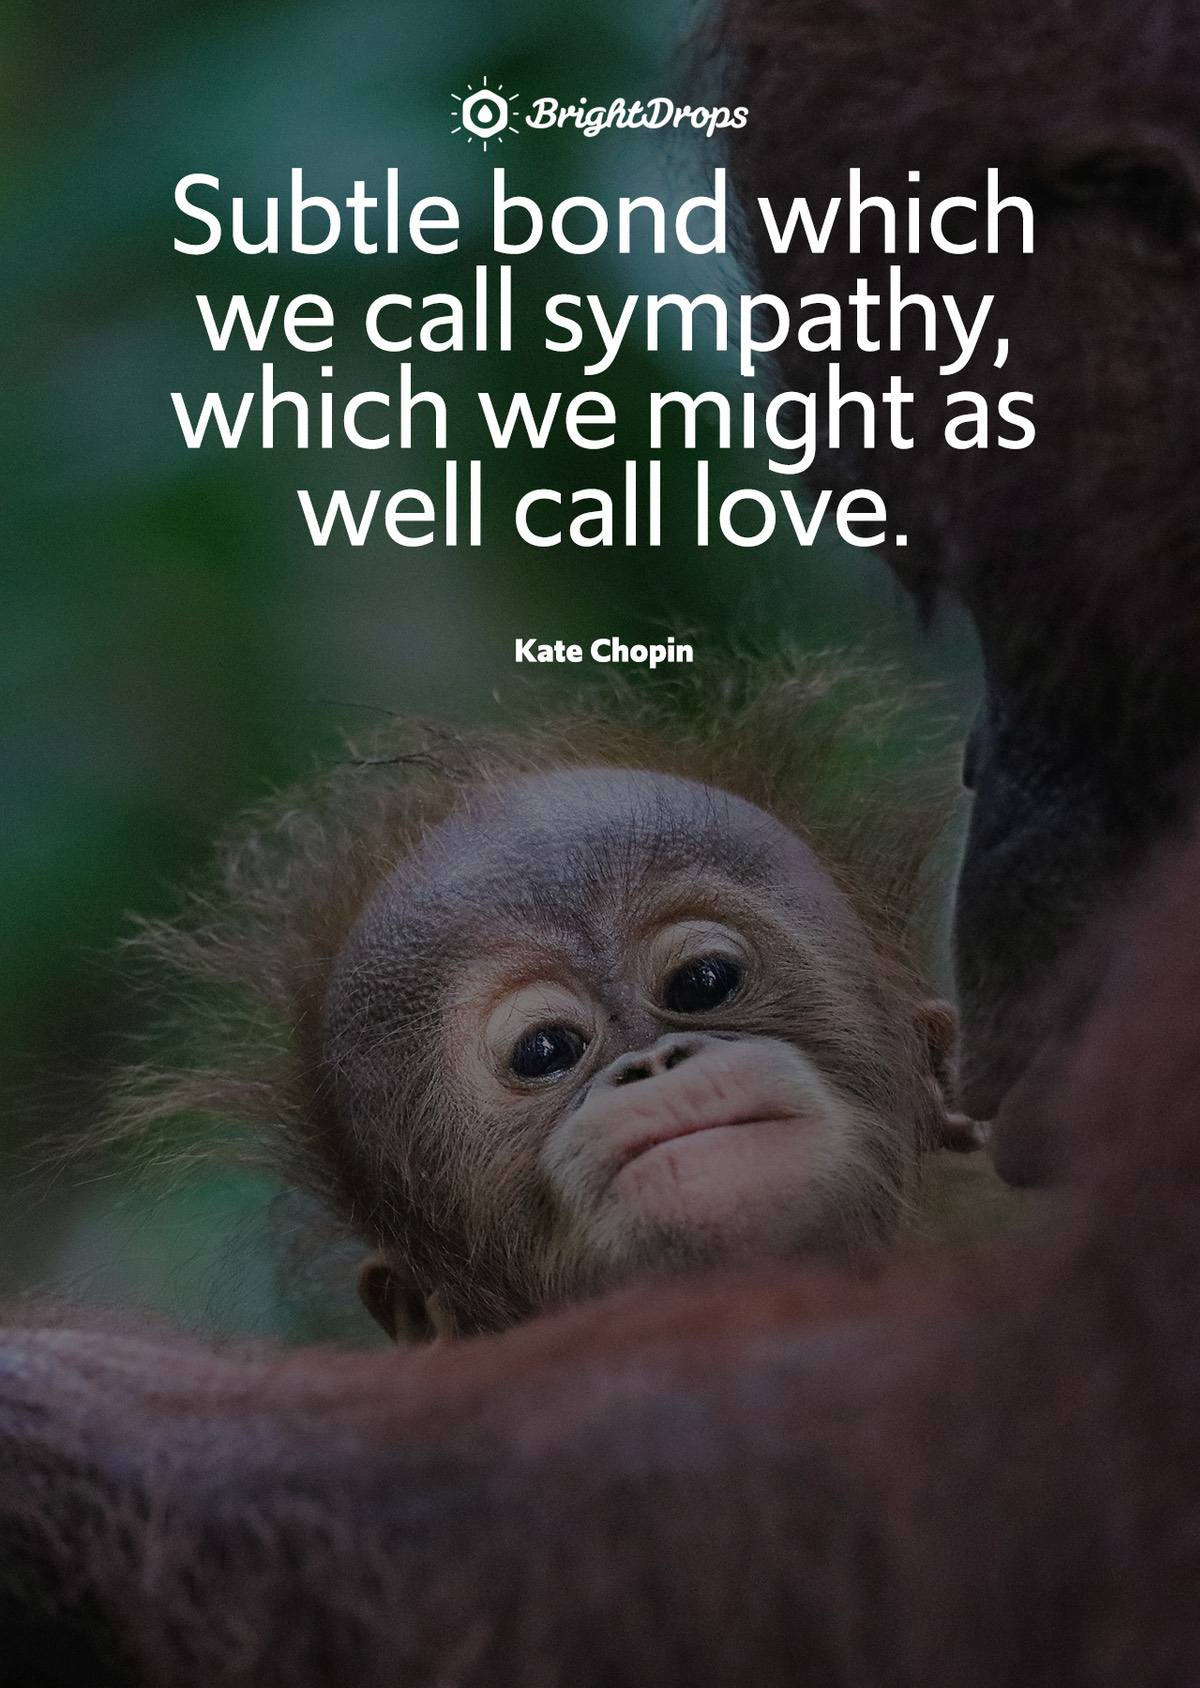 """Subtle bond which we call sympathy, which we might as well call love."" - Kate Chopin"